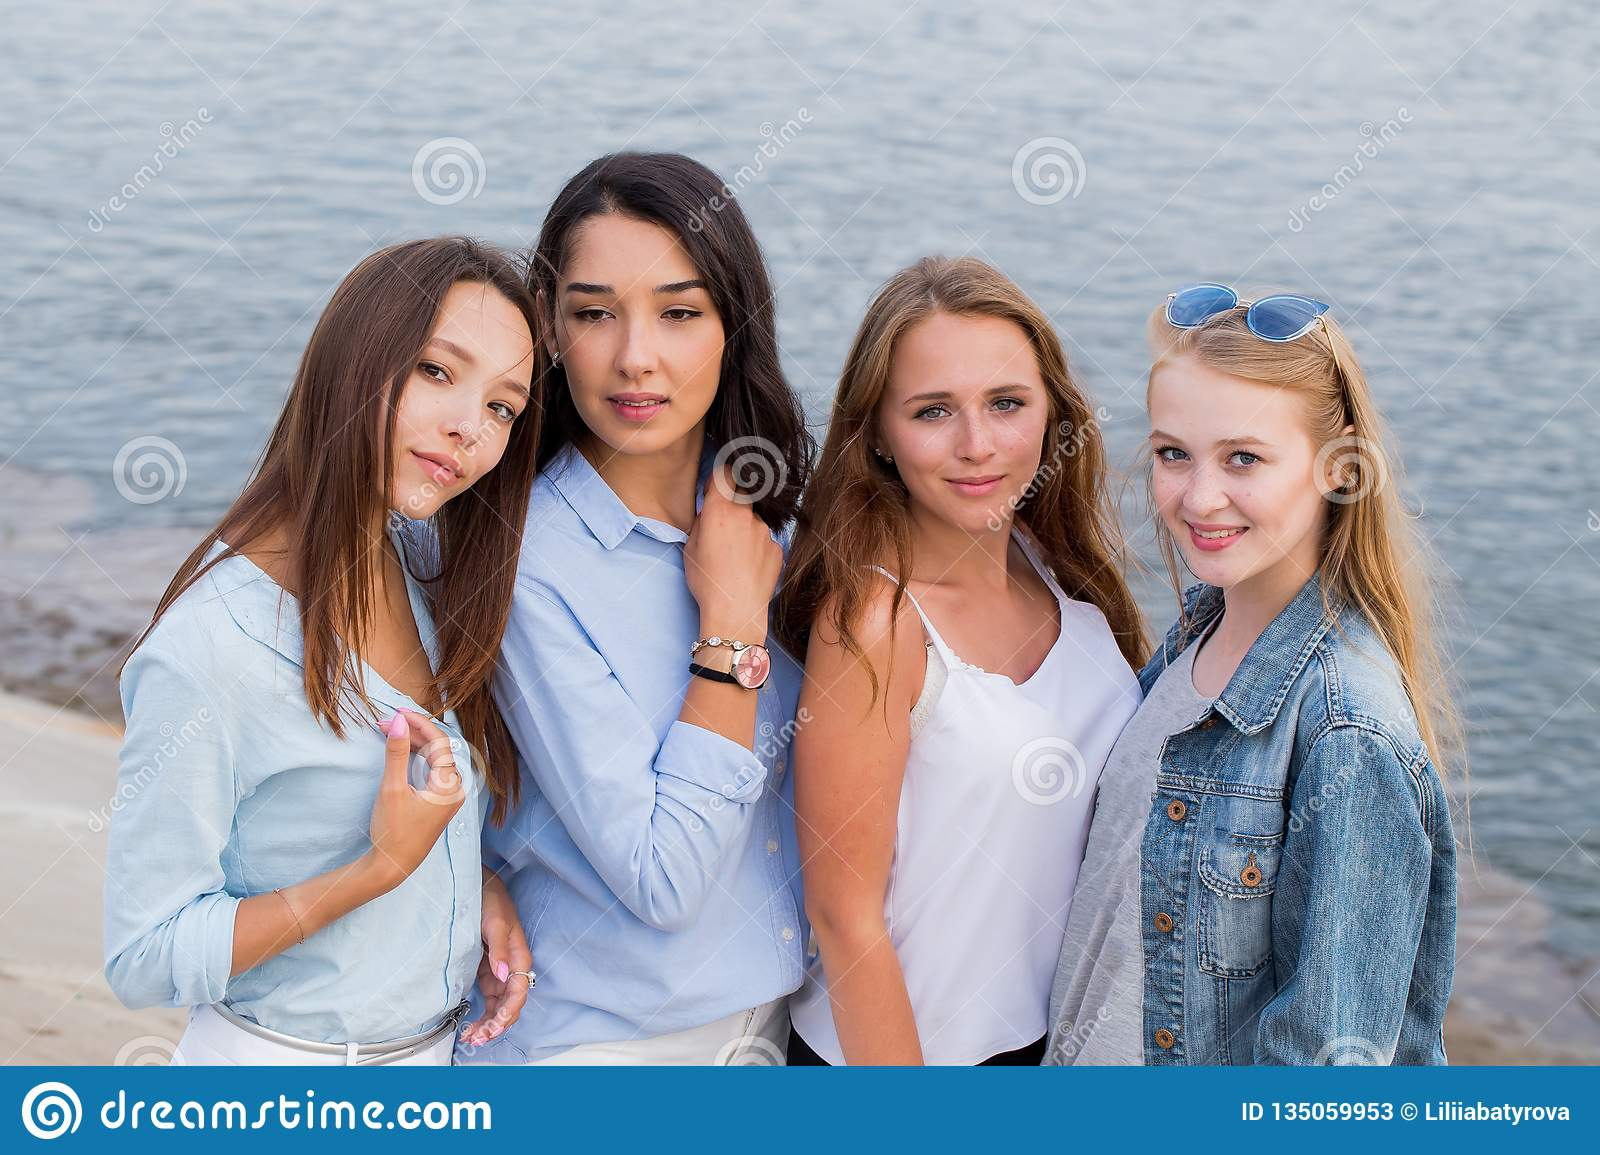 Portrait of four femle friends looking friendly at camera, smile, happy. people, lifestyle, friendship concept